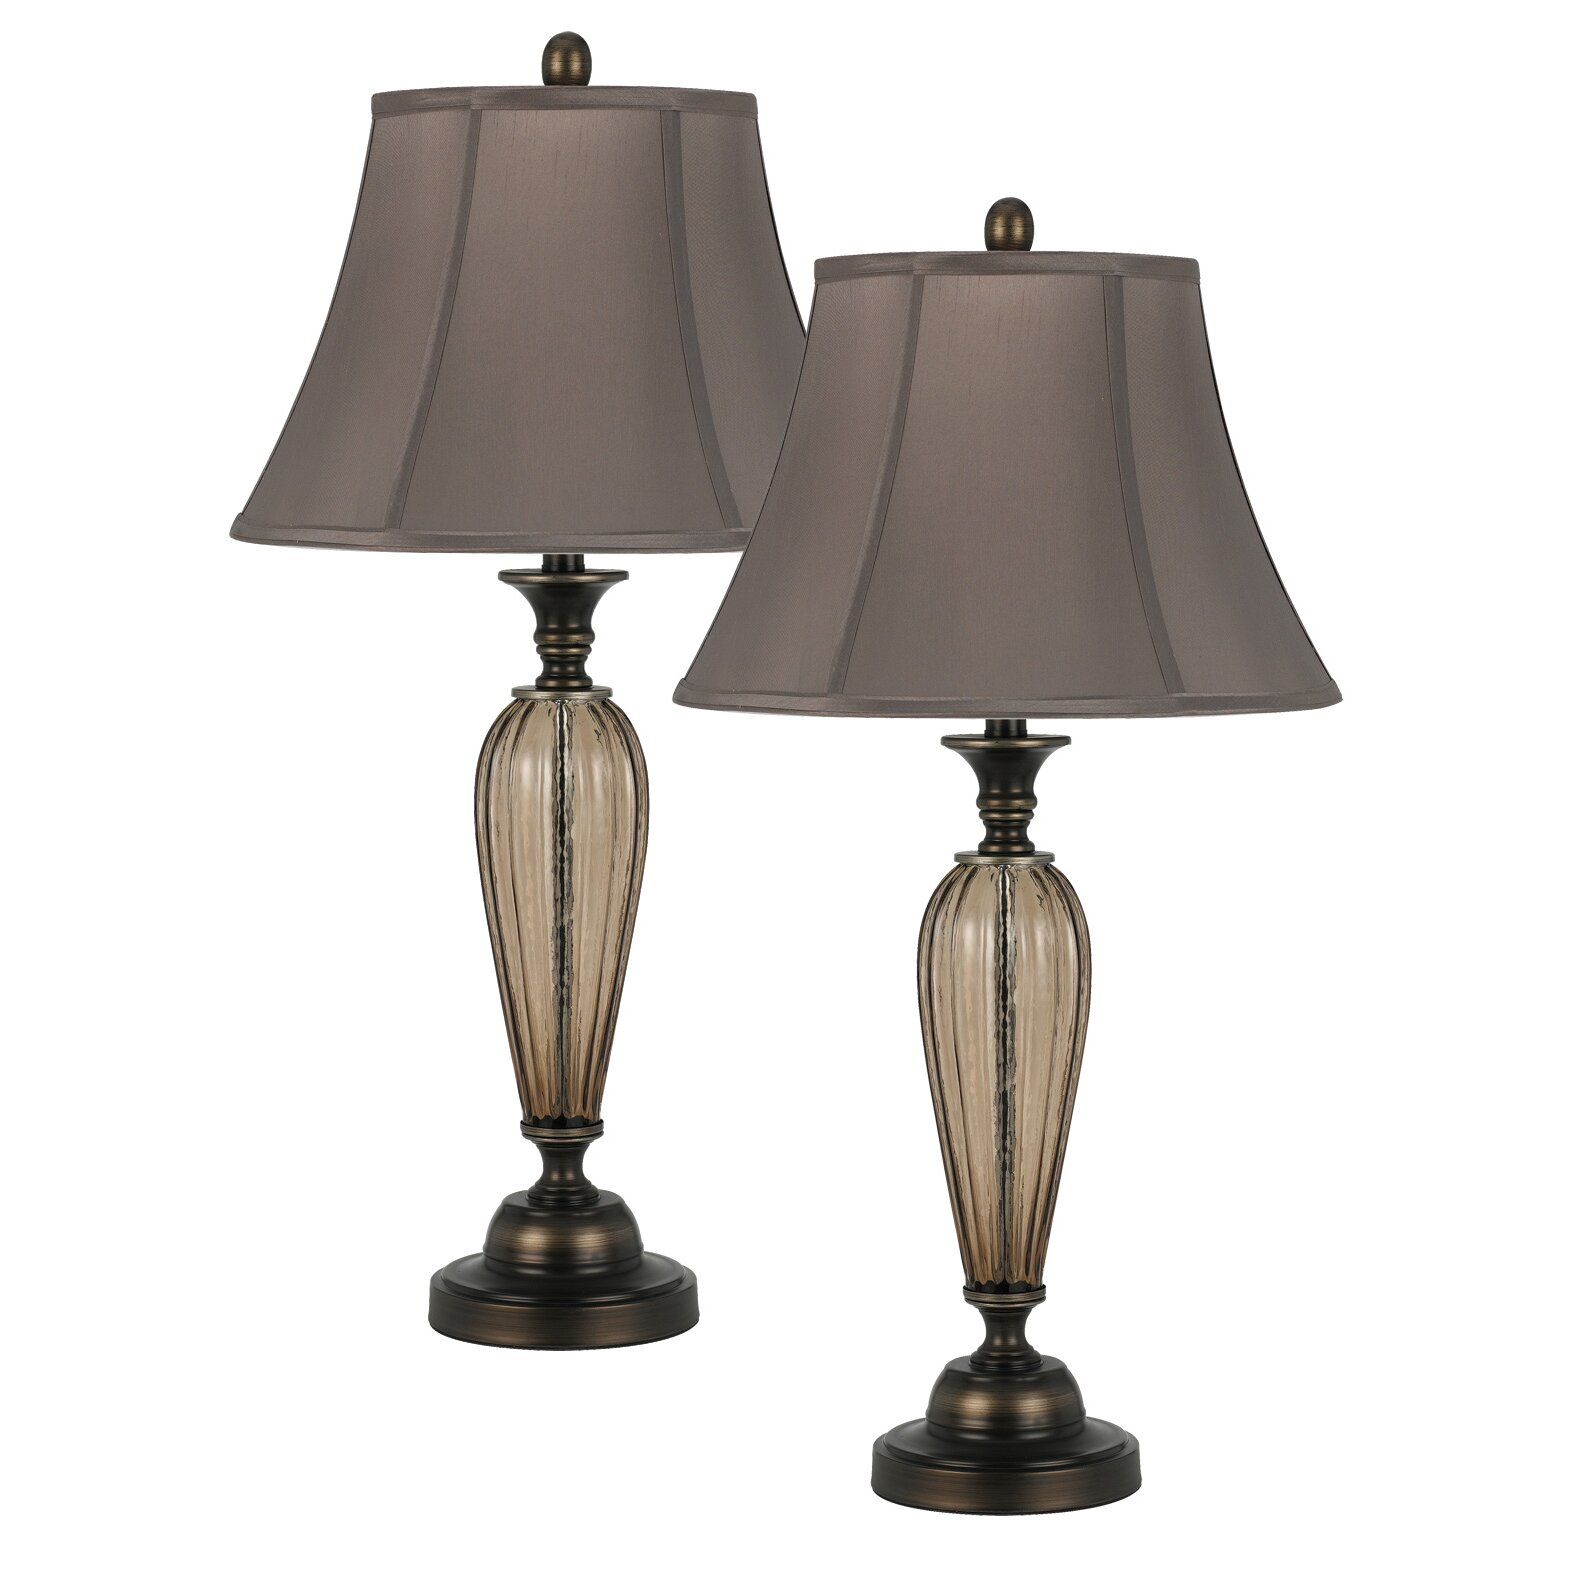 cal lighting antigo 31 table lamps set of 2 reviews. Black Bedroom Furniture Sets. Home Design Ideas